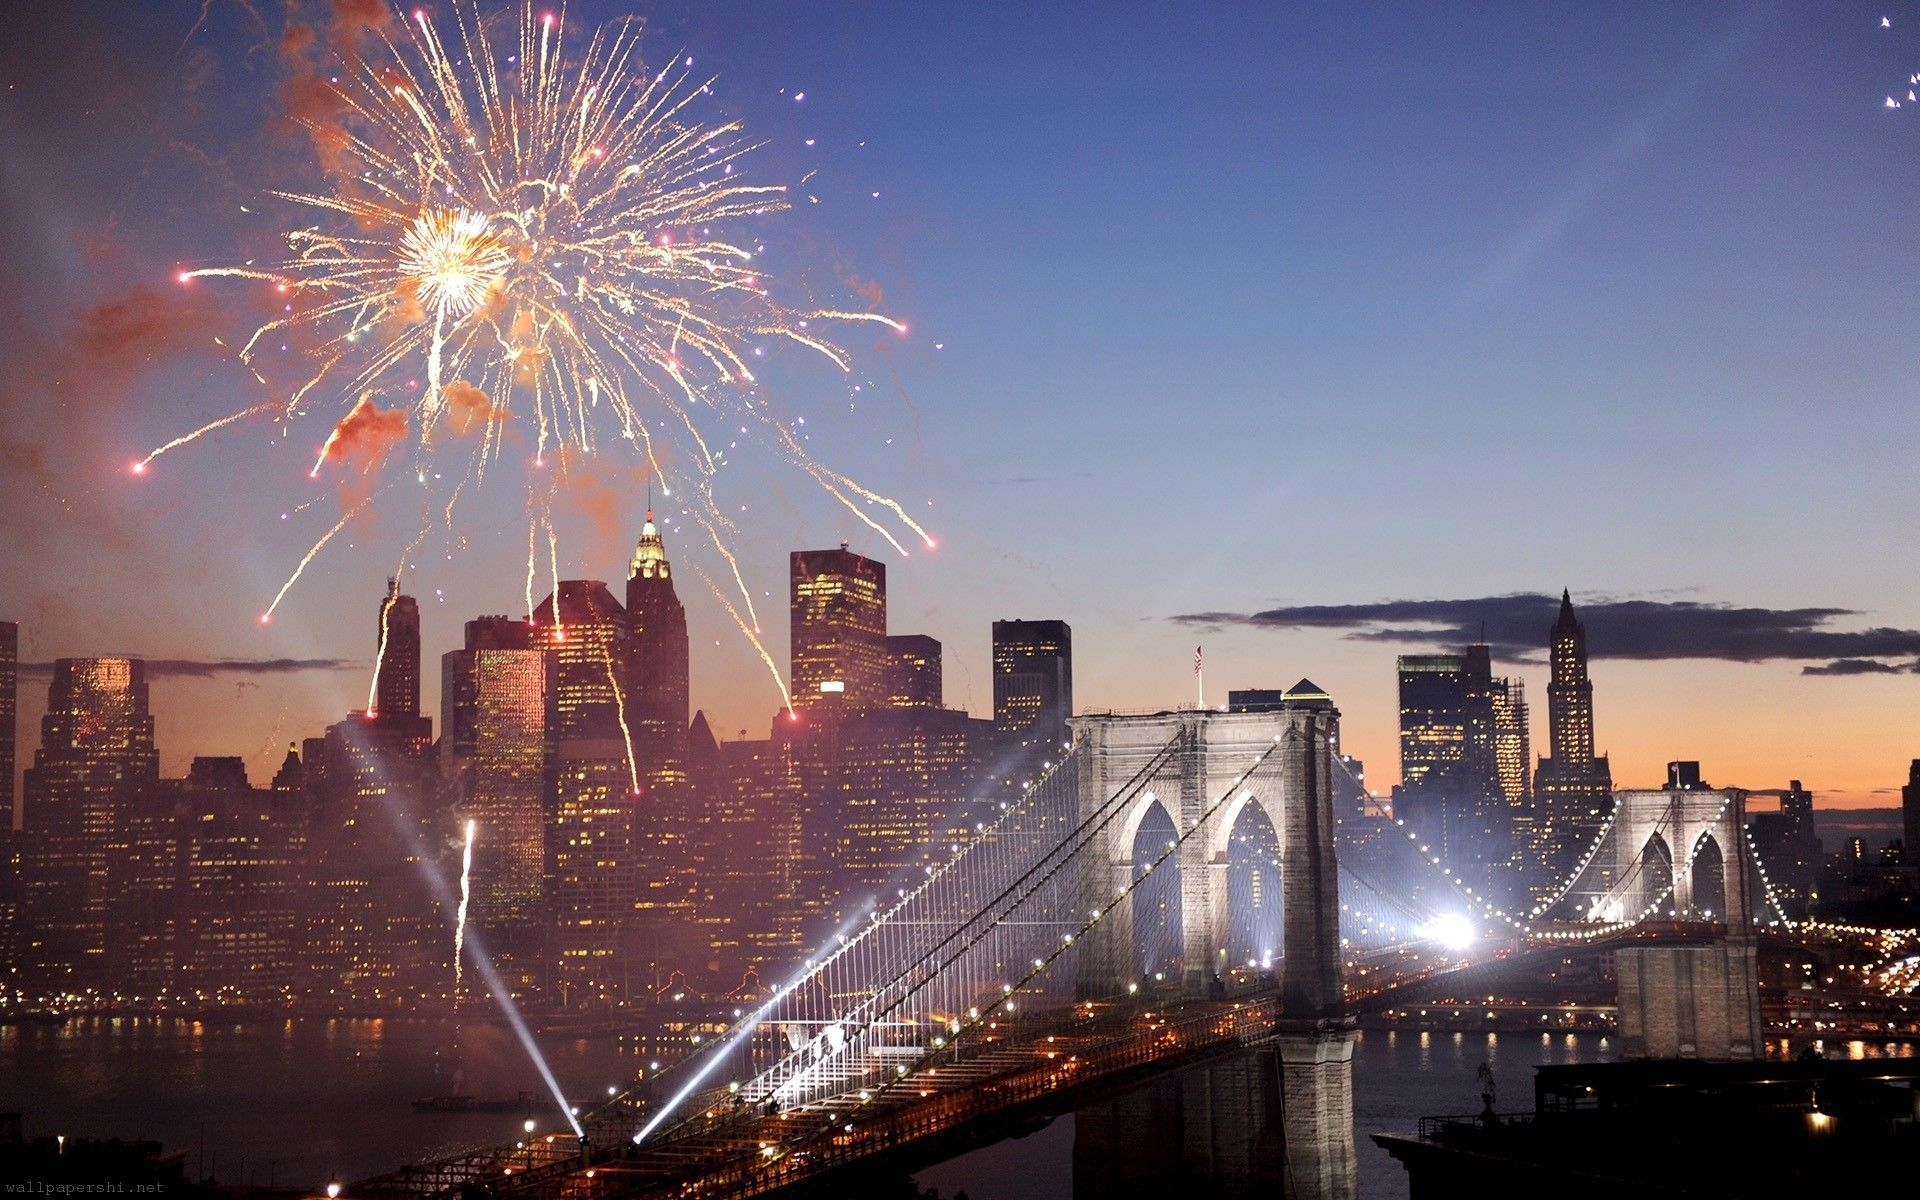 fireworks england holiday fun / Wallpapers Hi (With images